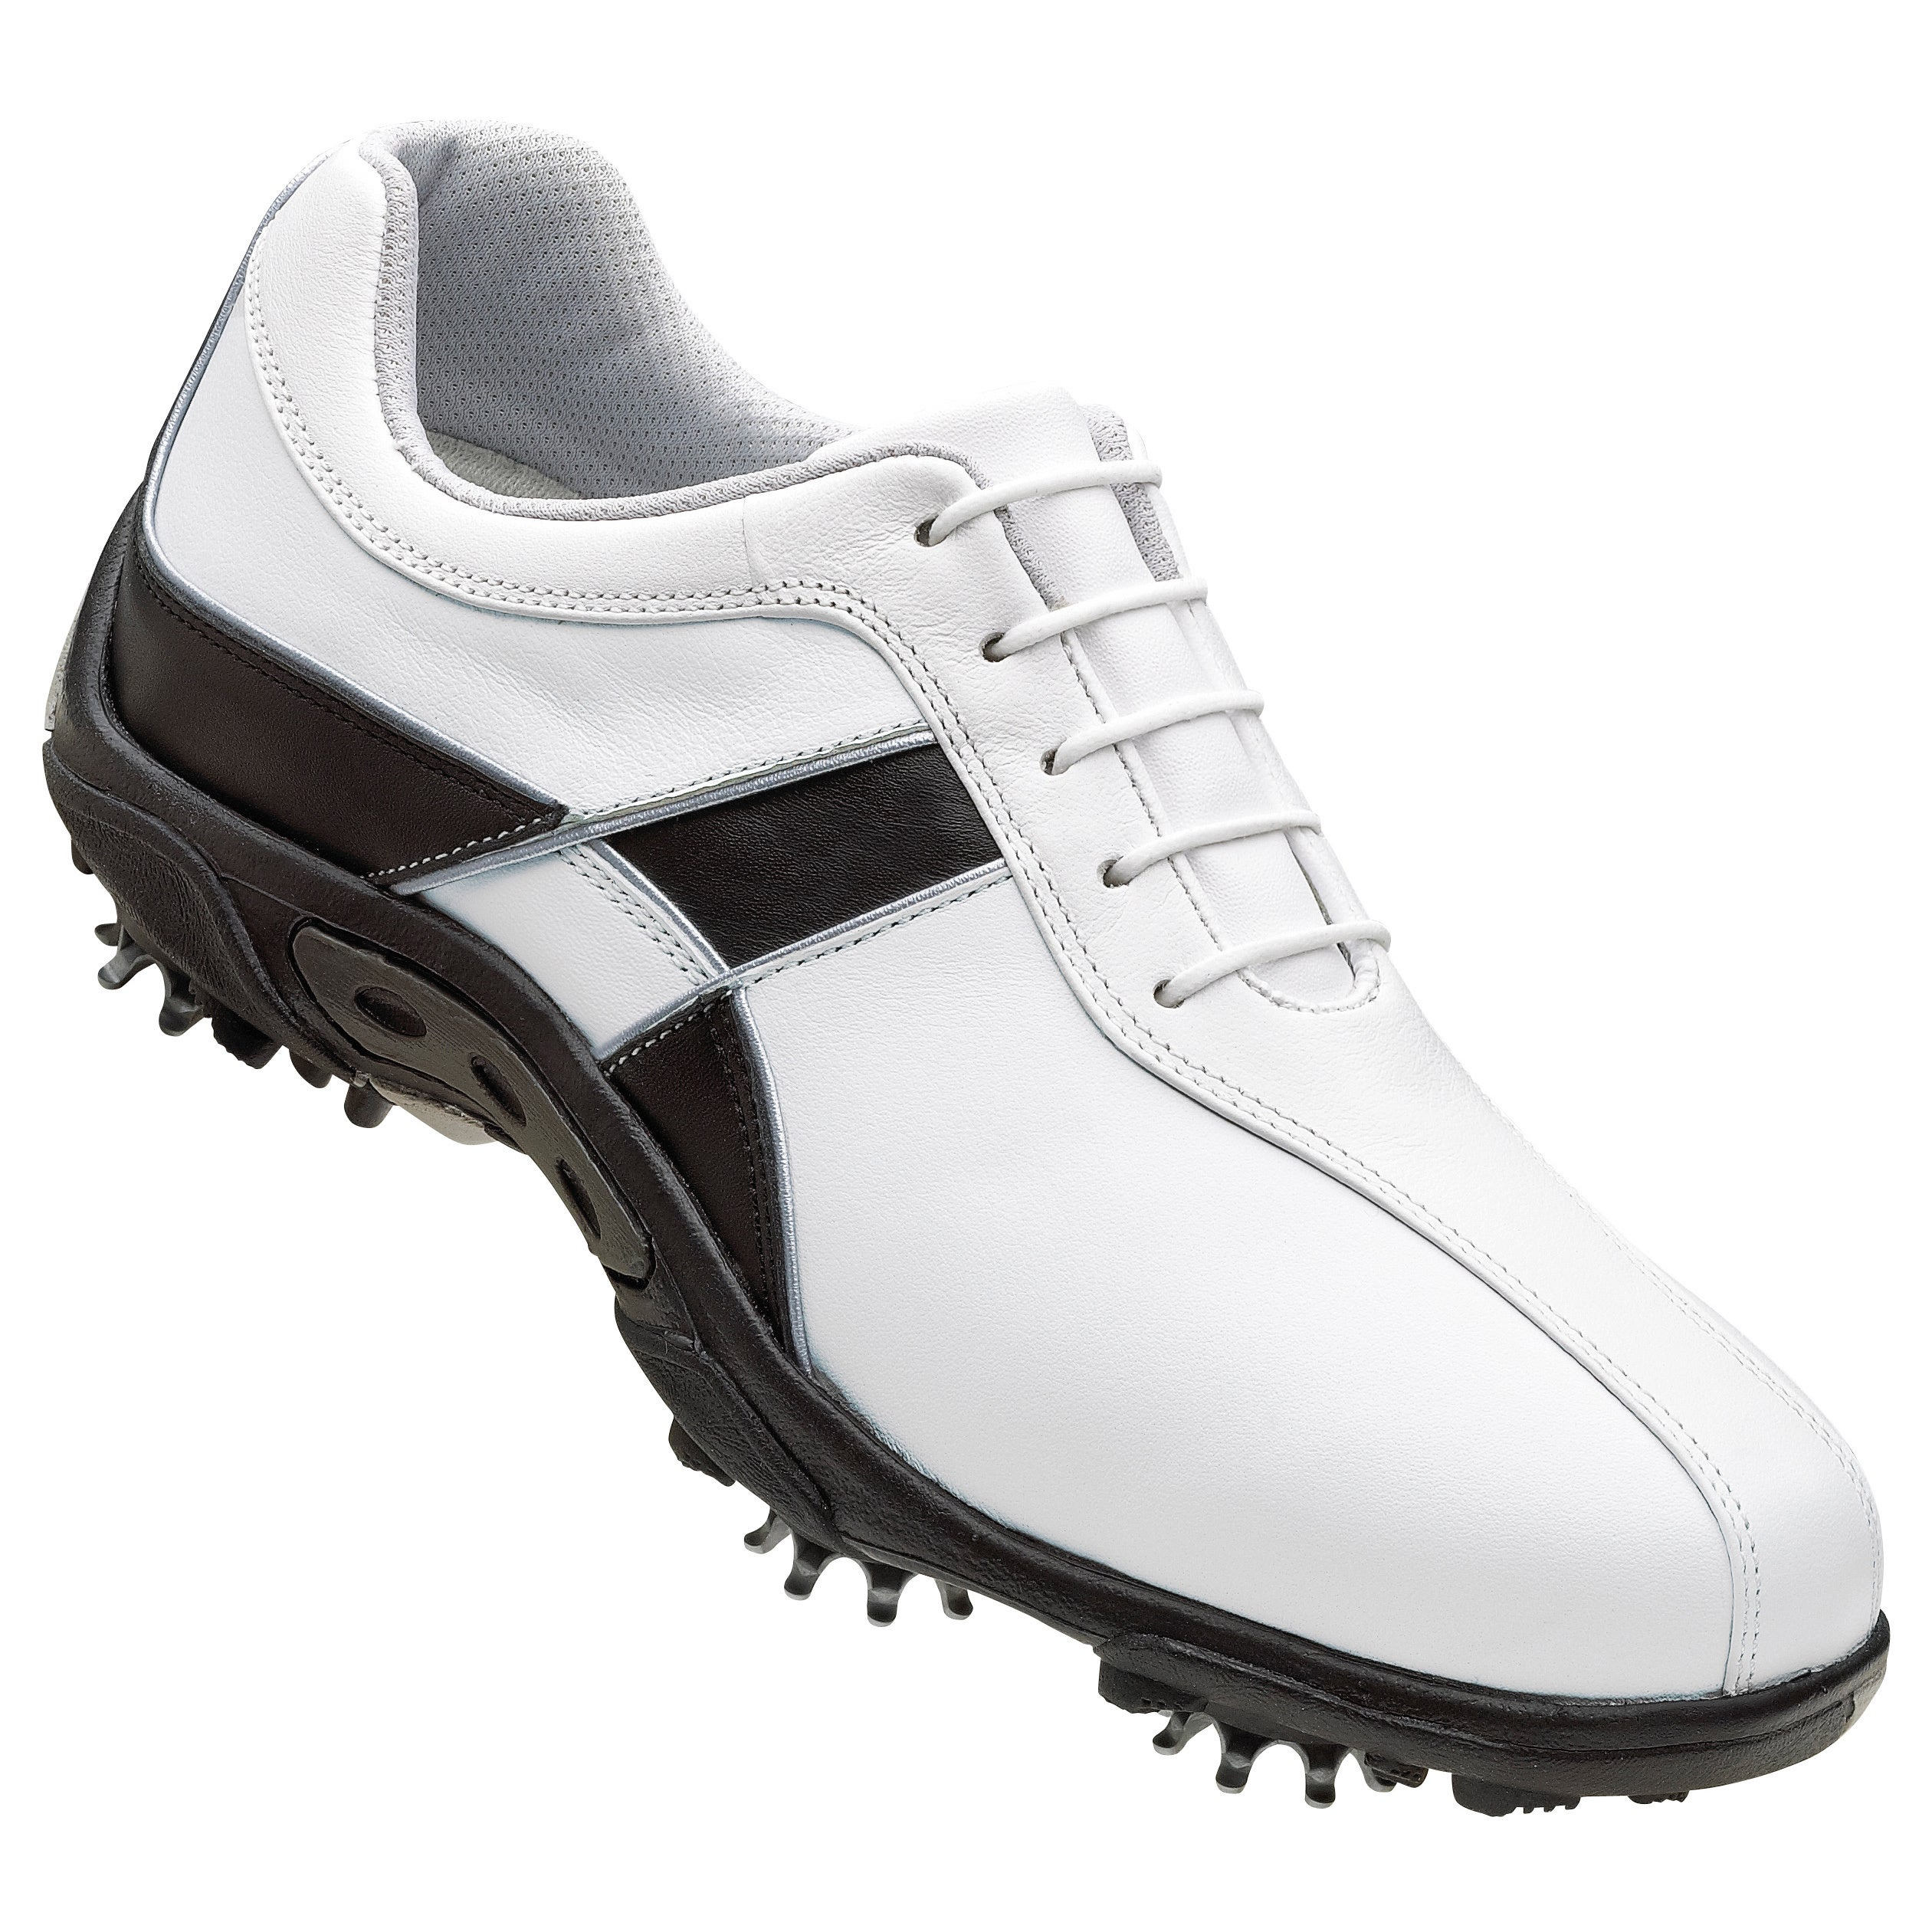 Women s FootJoy Golf Shoes